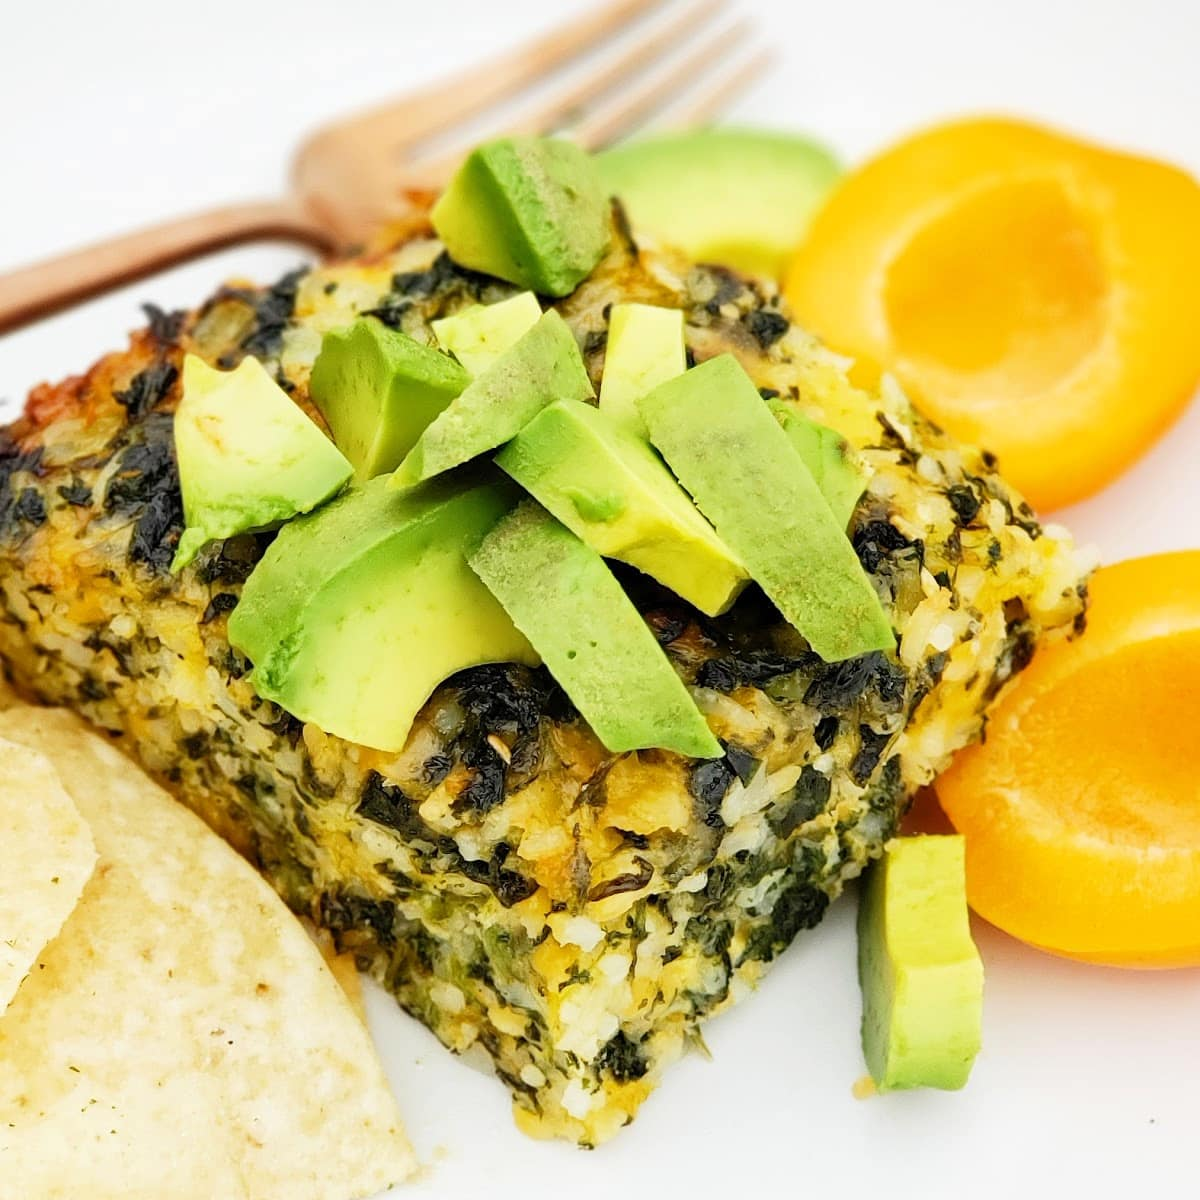 Spinach Rice Casserole topped with chopped avocado with corn chips and apricot on the side